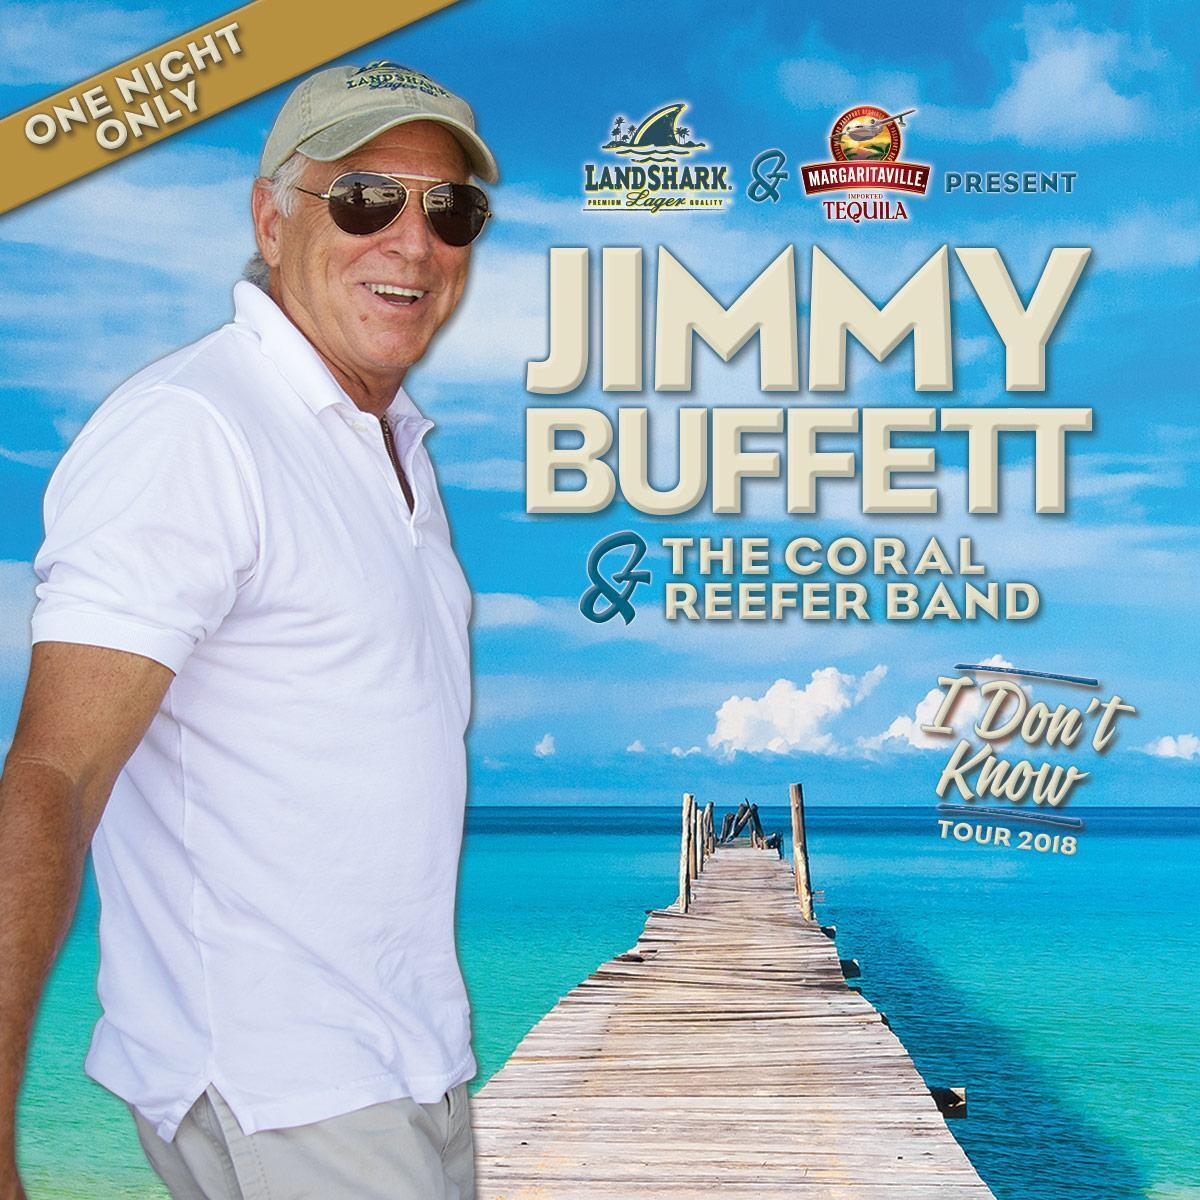 Jimmy buffett assholes of the world — pic 8